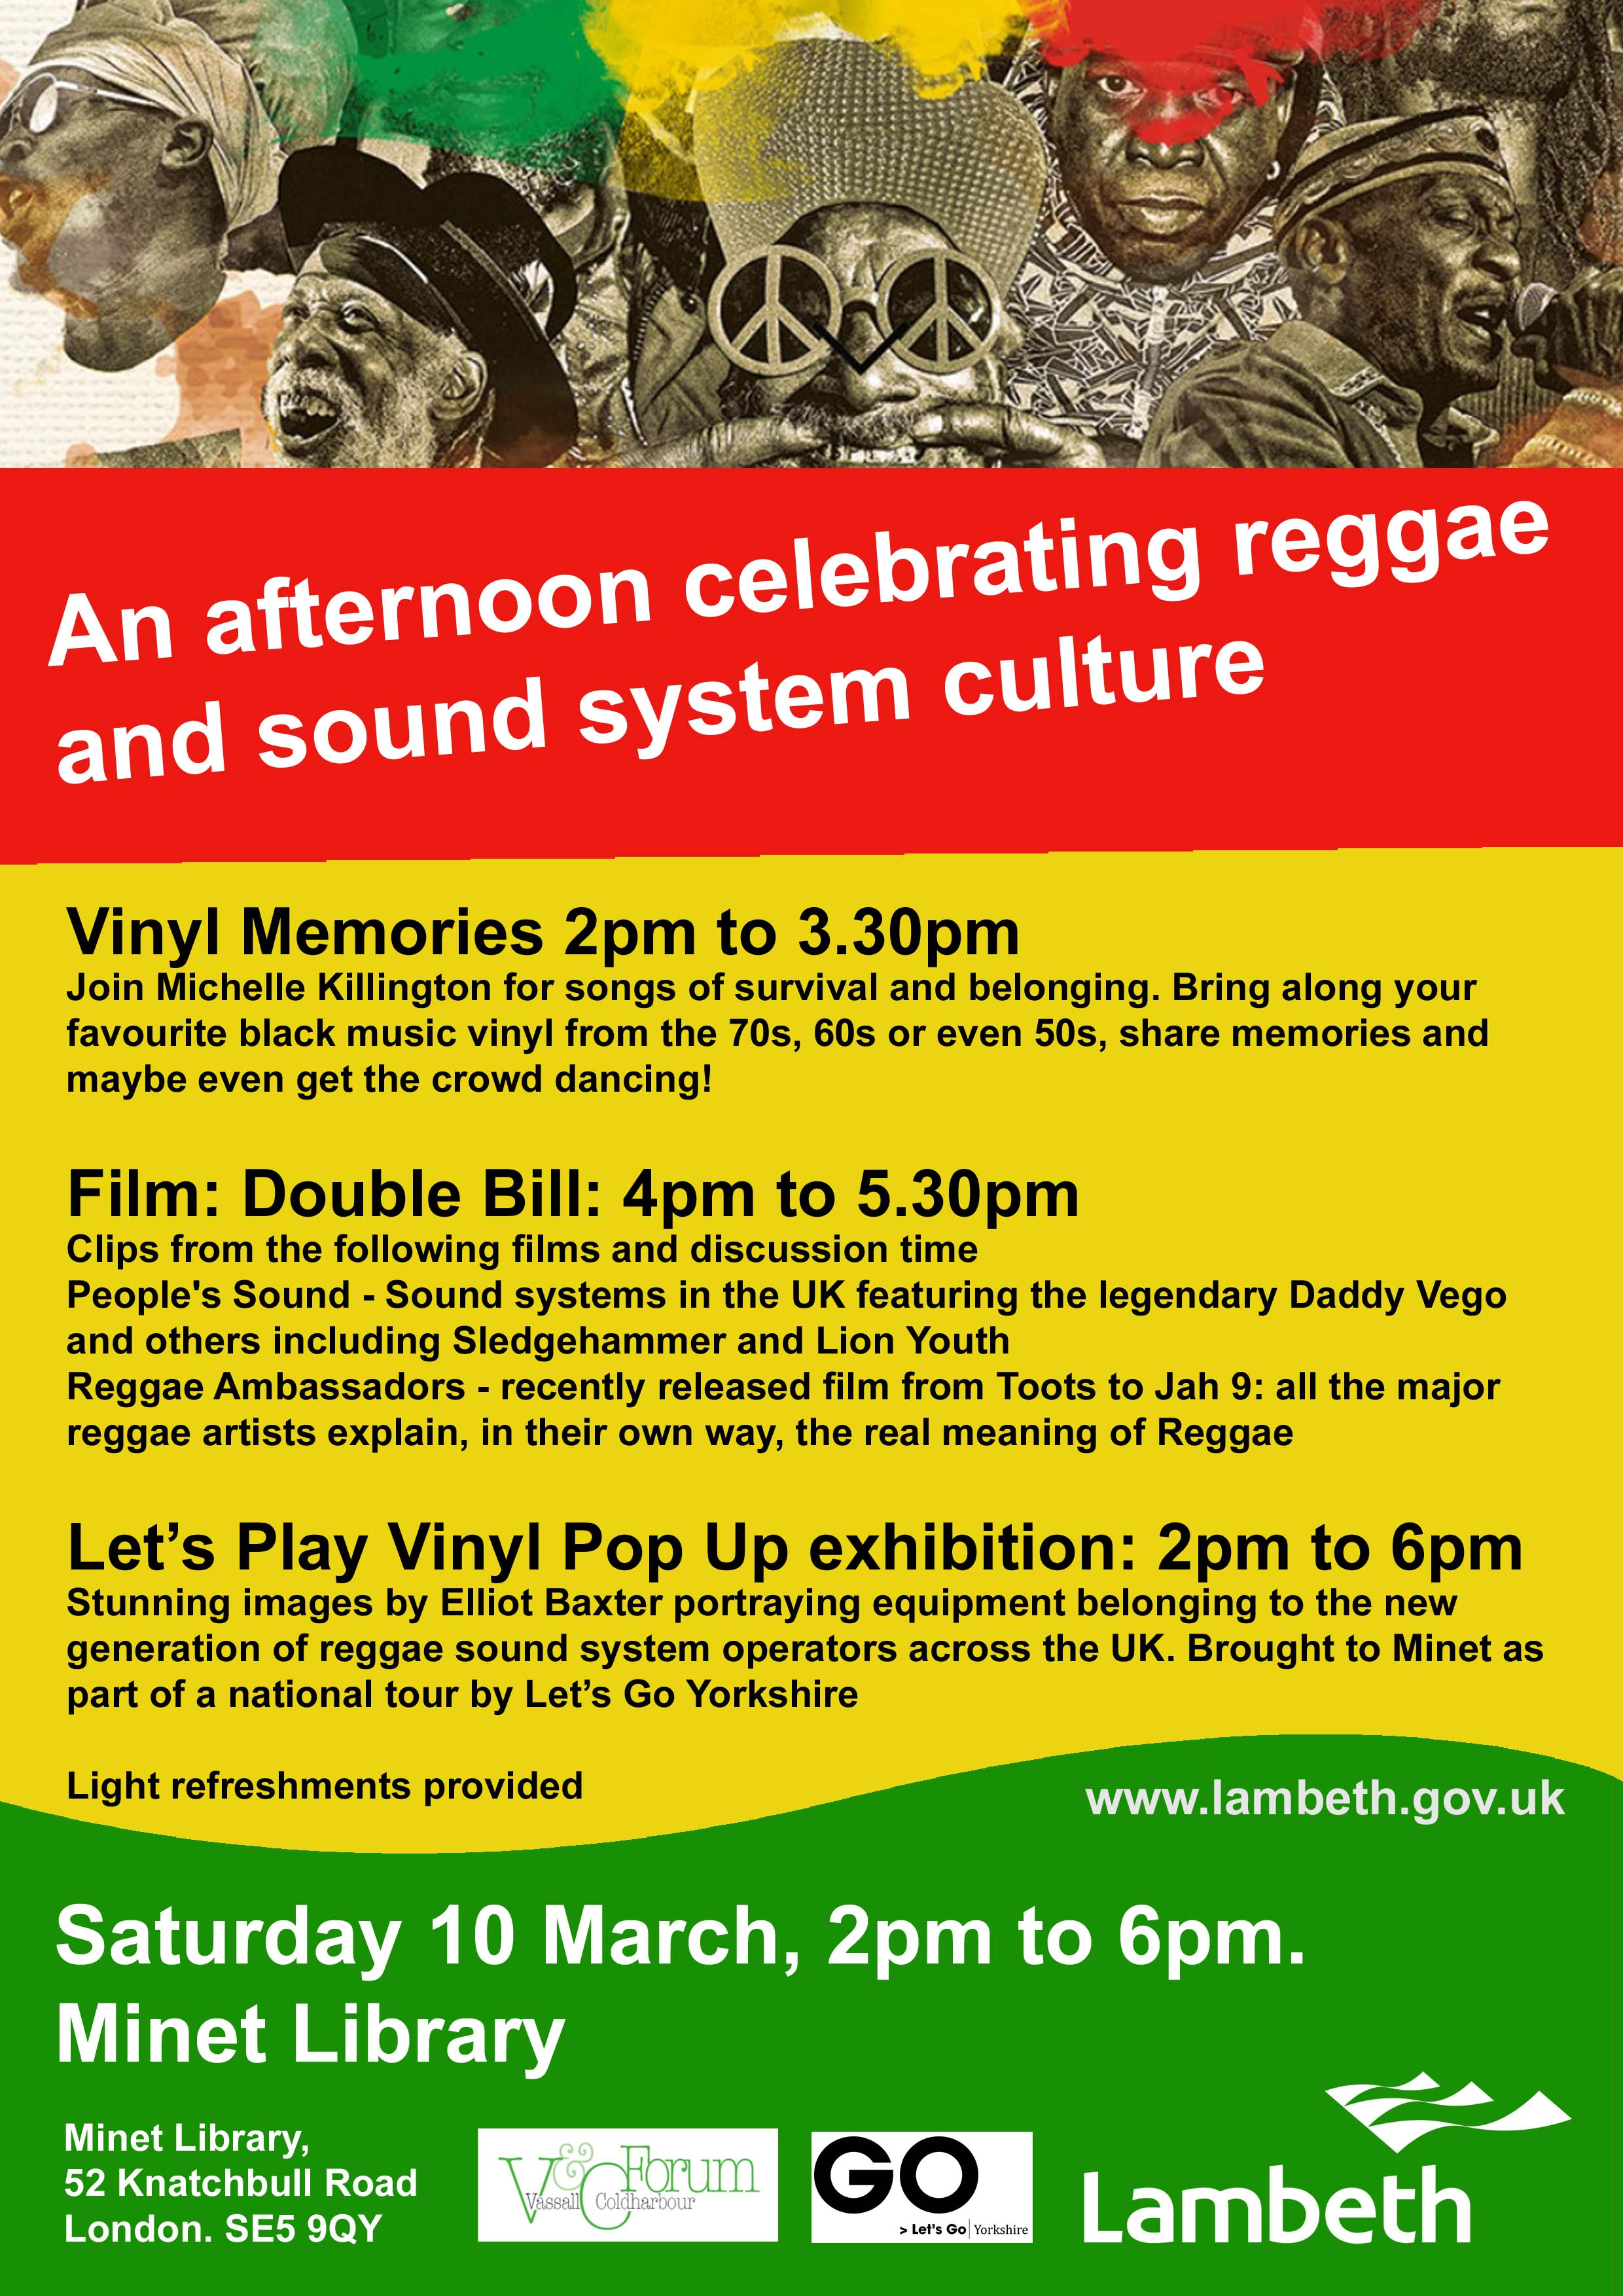 An afternoon celebrating reggae and sound system culture. Saturday 10 March, 2pm to 6pm at Minet Library, Knatchbull Road, SE5 9QY